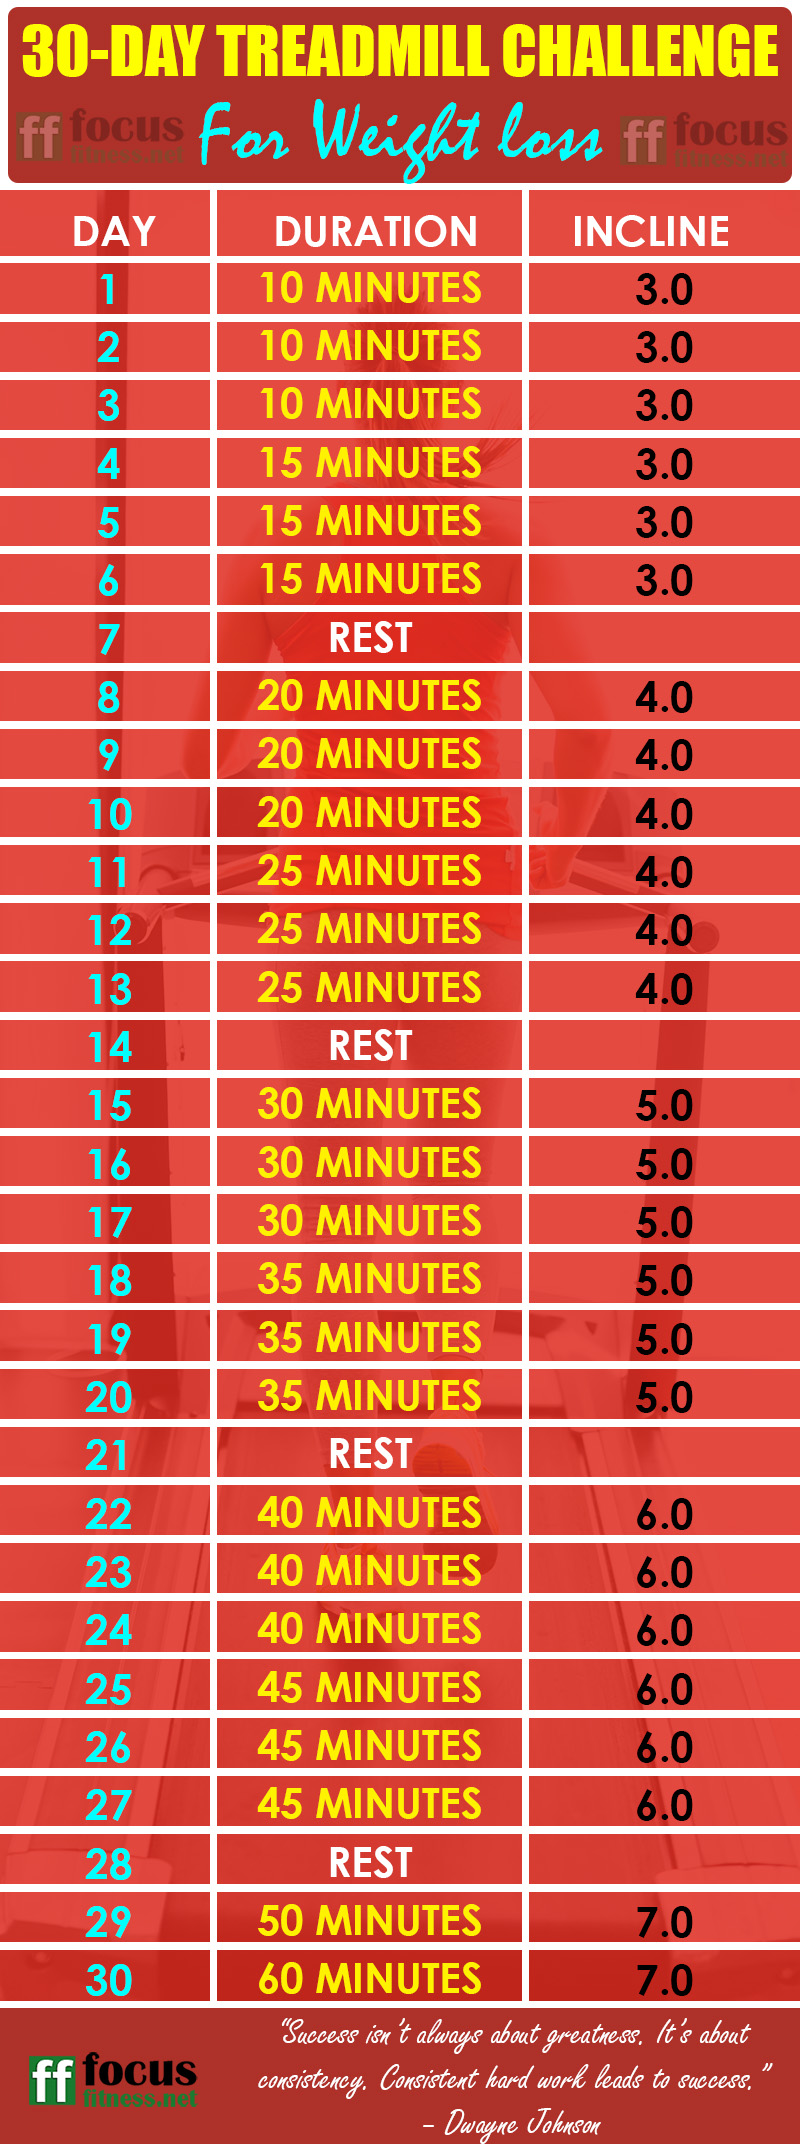 This treadmill challenge will help you lose weight in 30 days #treadmill #challenge #30days #focusfitness